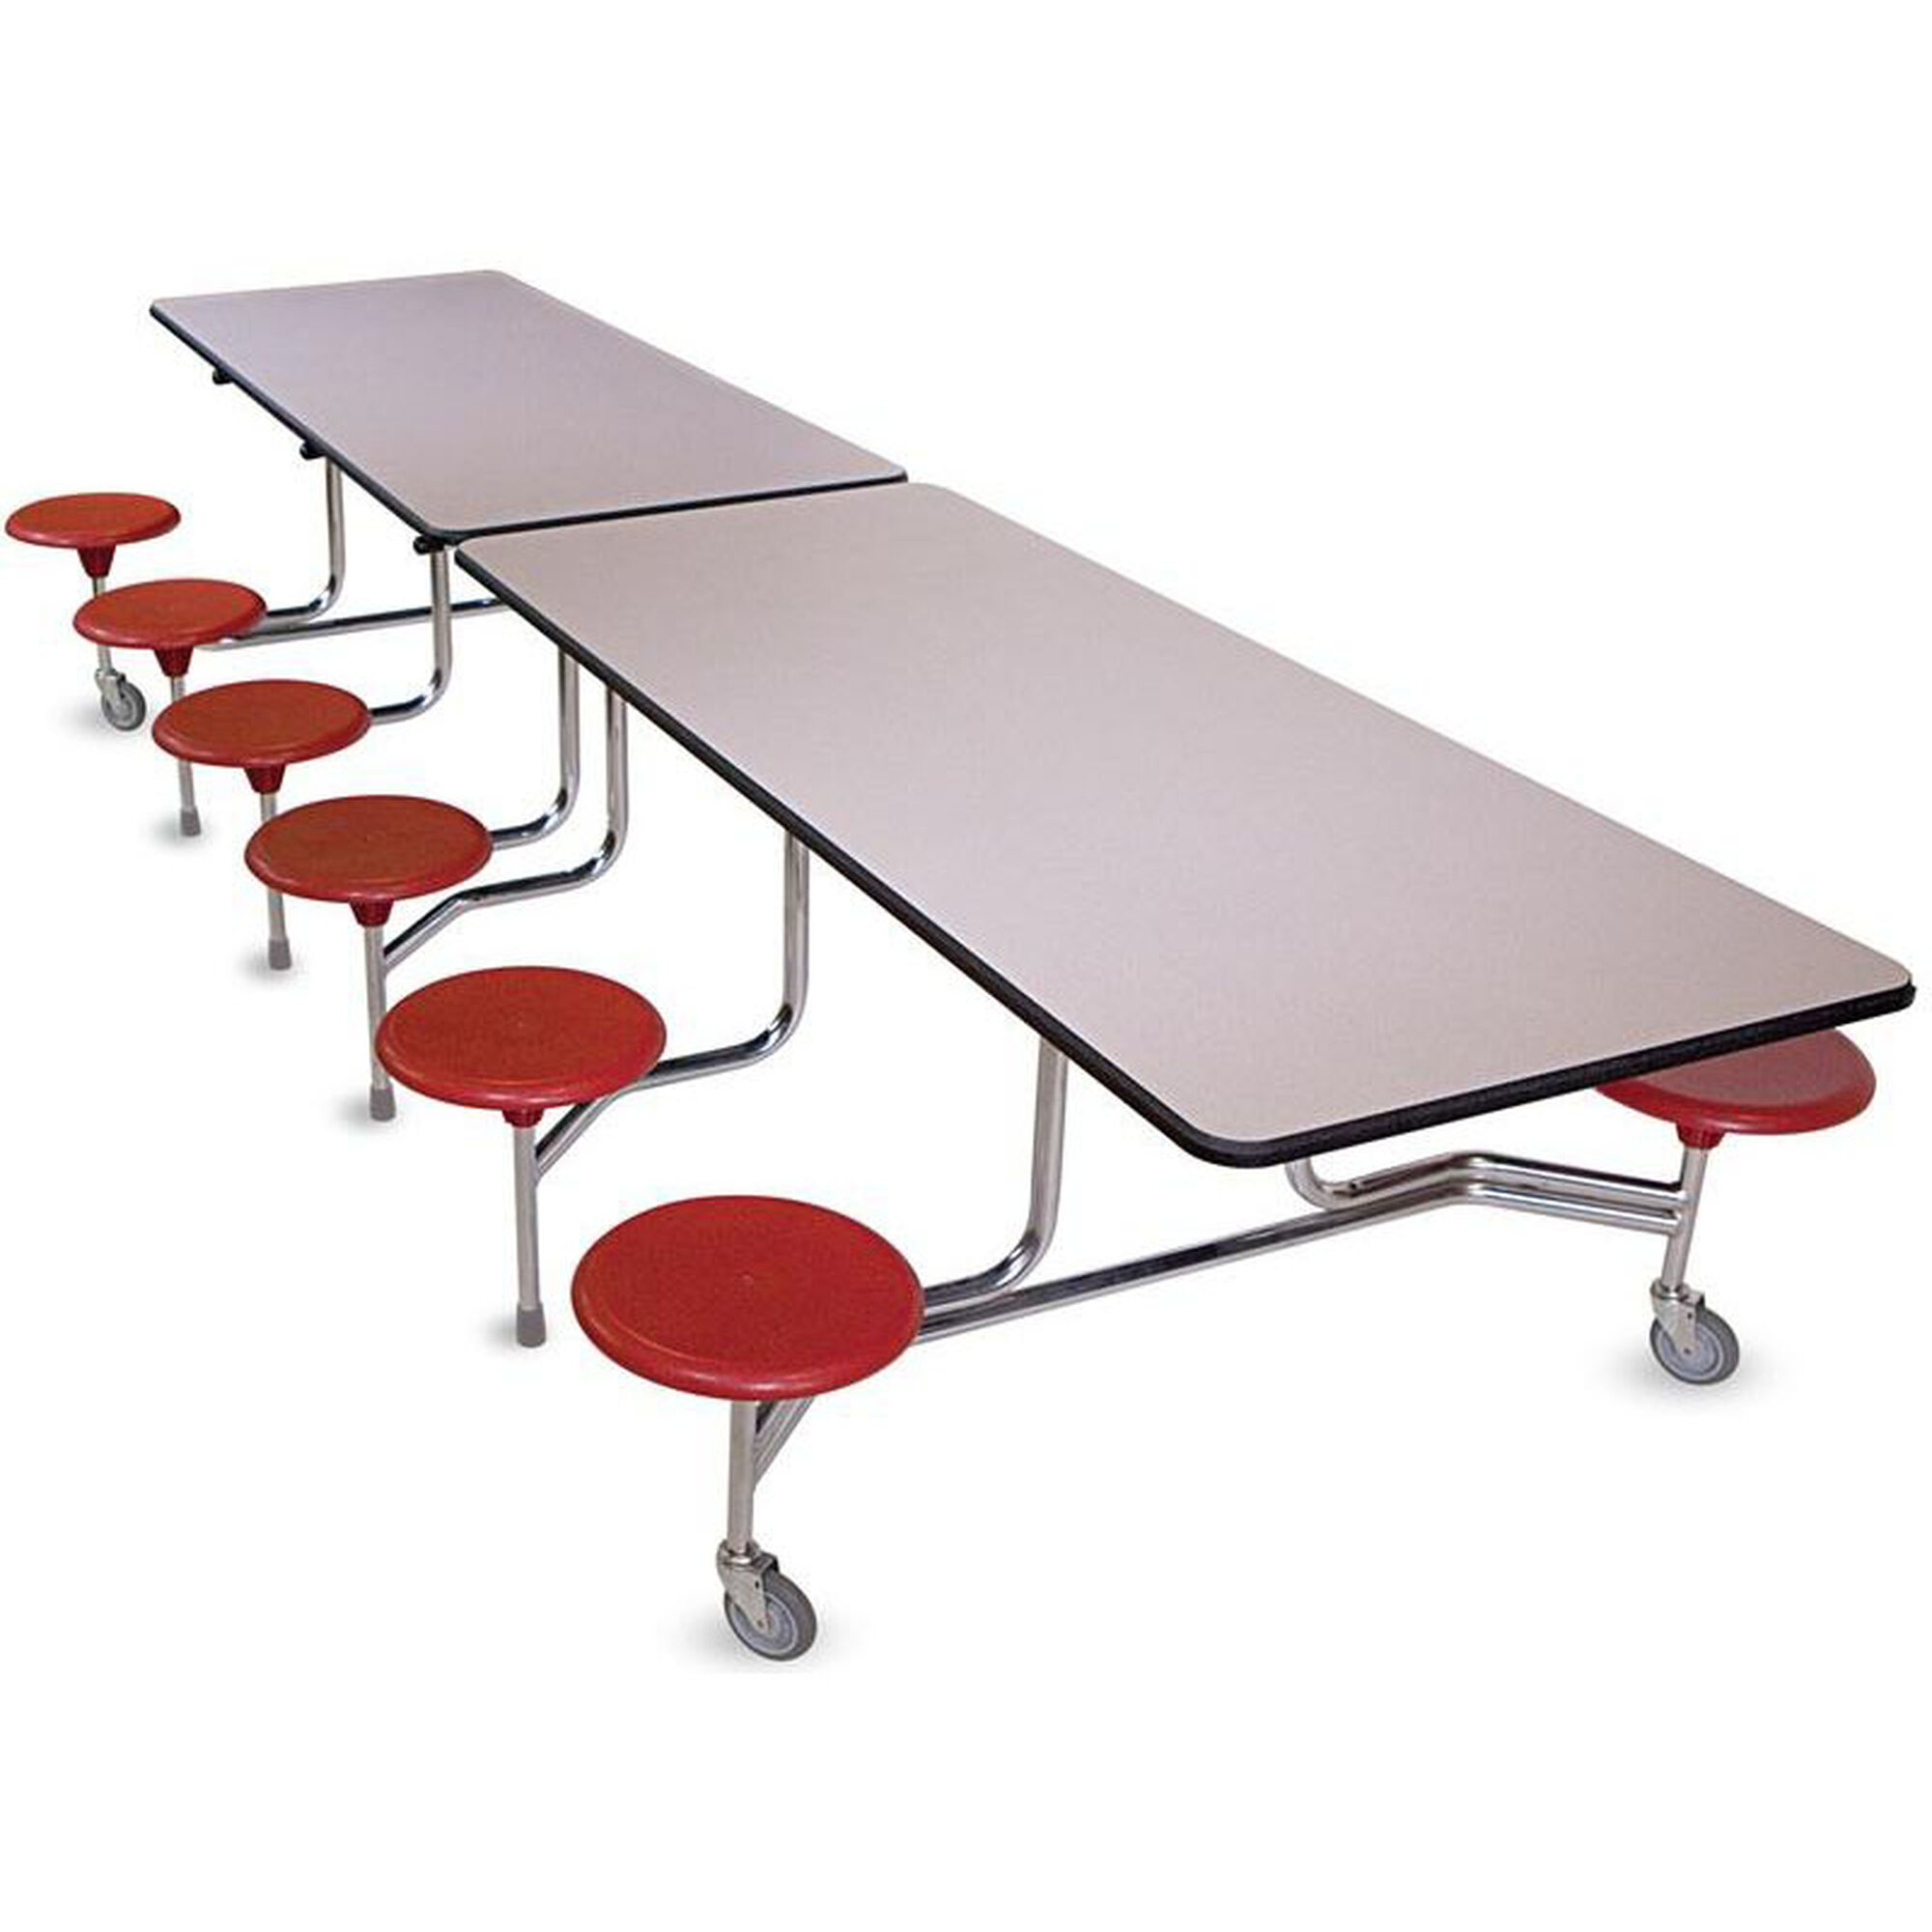 Biofit intermediate foldable cafeteria table with 12 for 120 round table seats how many